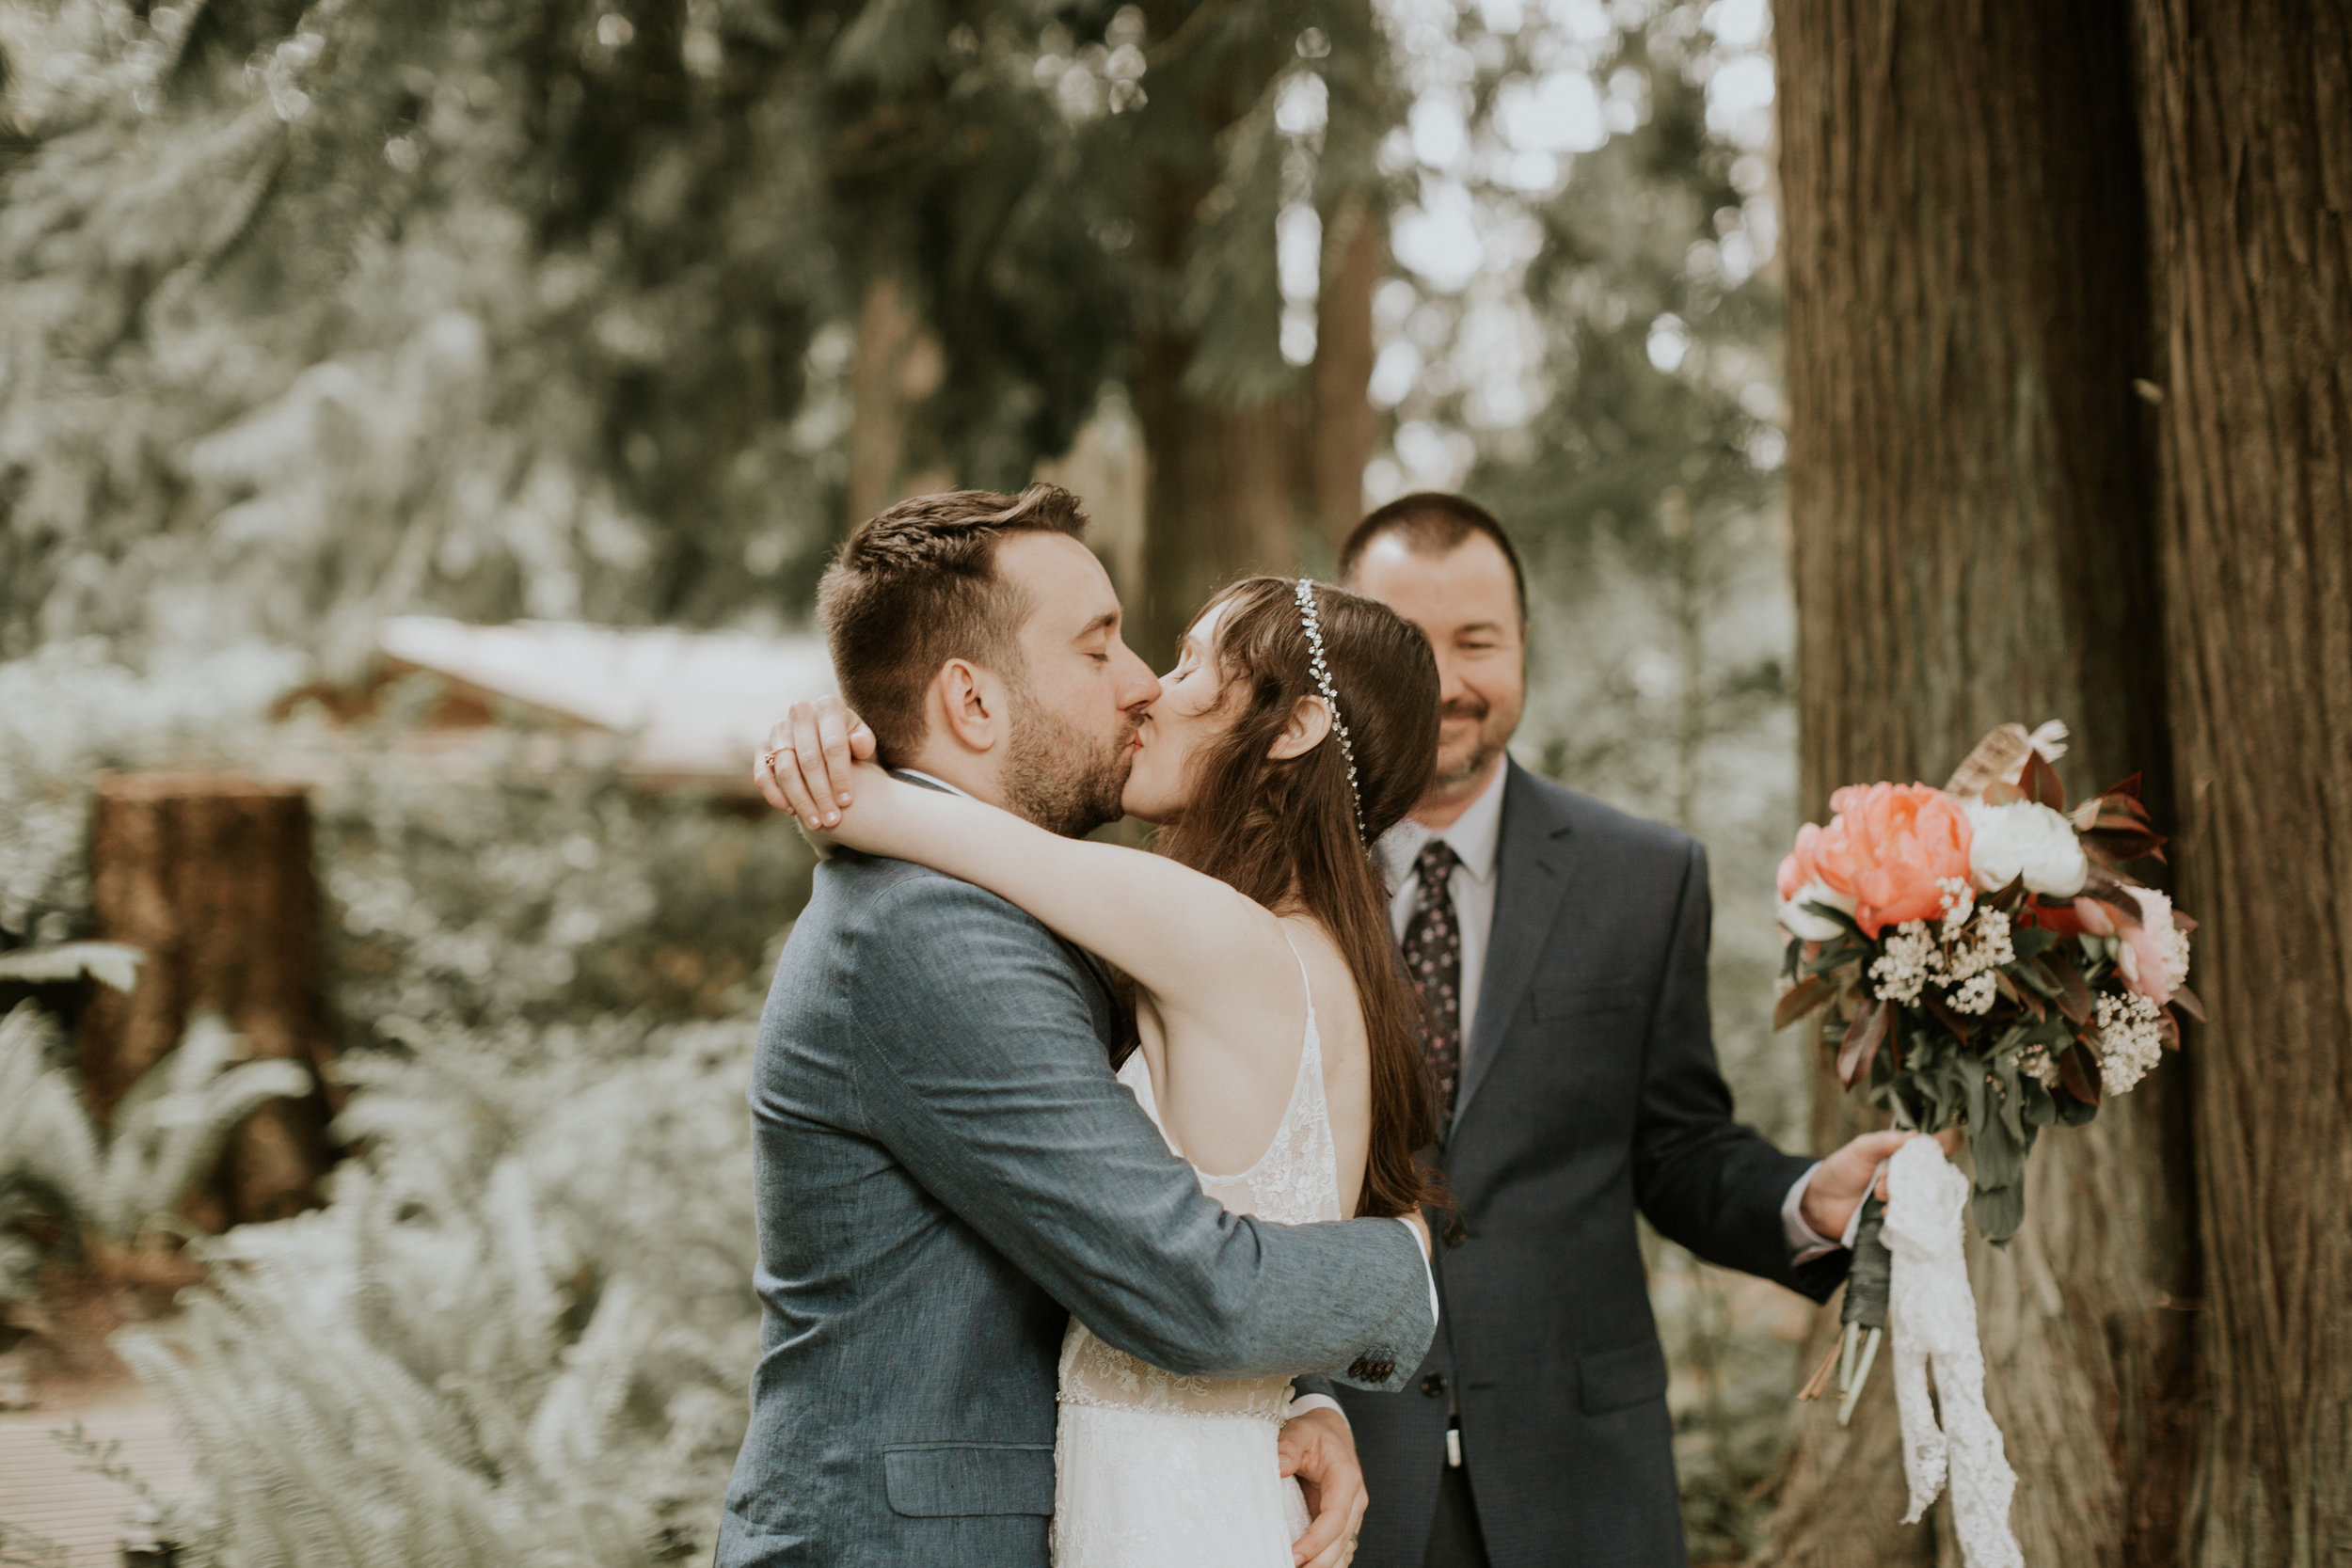 PNW-elopement-wedding-engagement-olympic national park-port angeles-hurricane ridge-lake crescent-kayla dawn photography- photographer-photography-kayladawnphoto-71.jpg